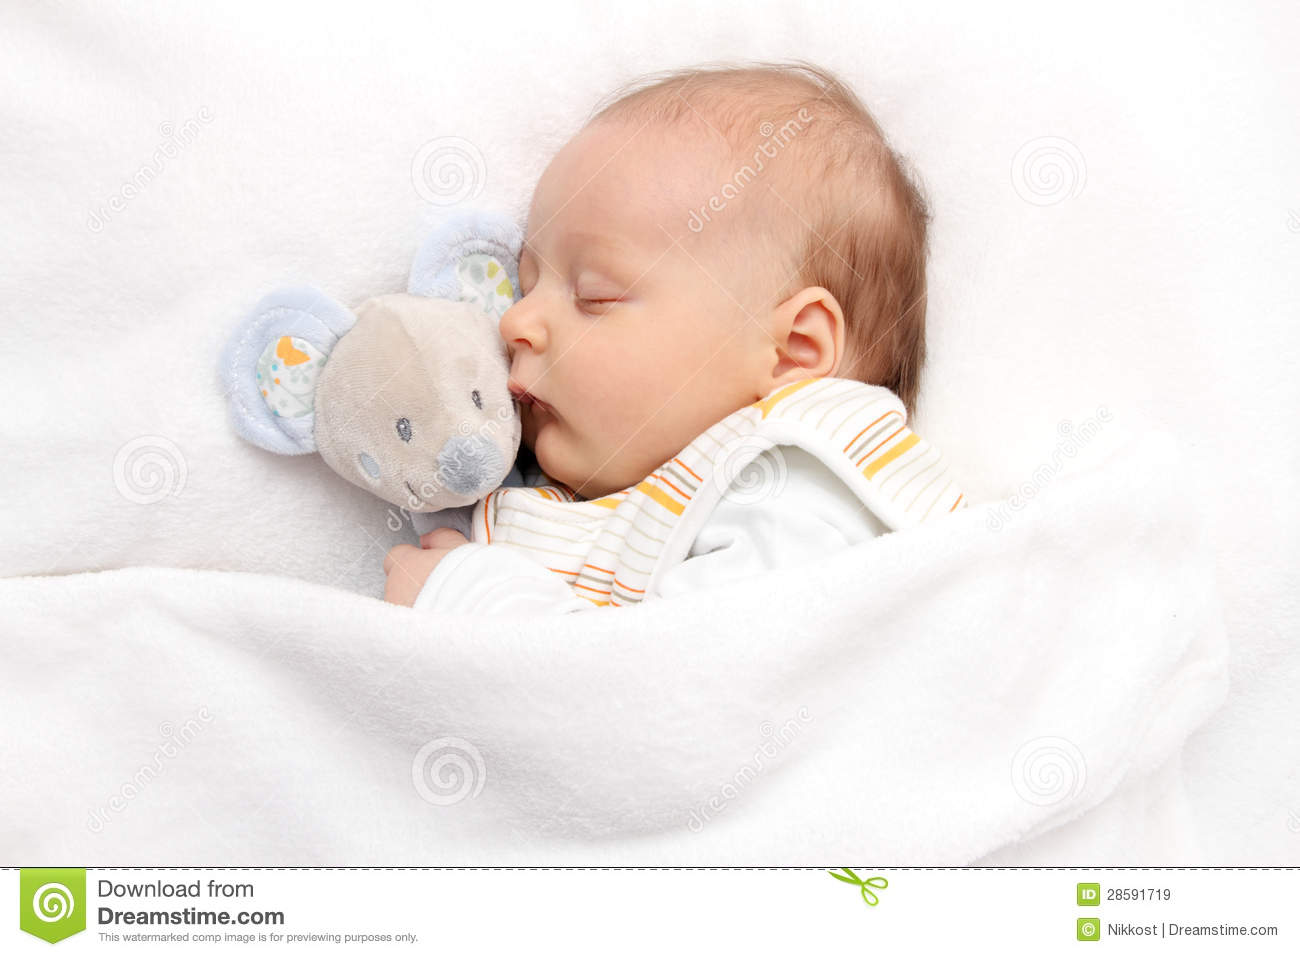 Baby Sleeping In Bed Royalty Free Stock Images - Image: 28591719